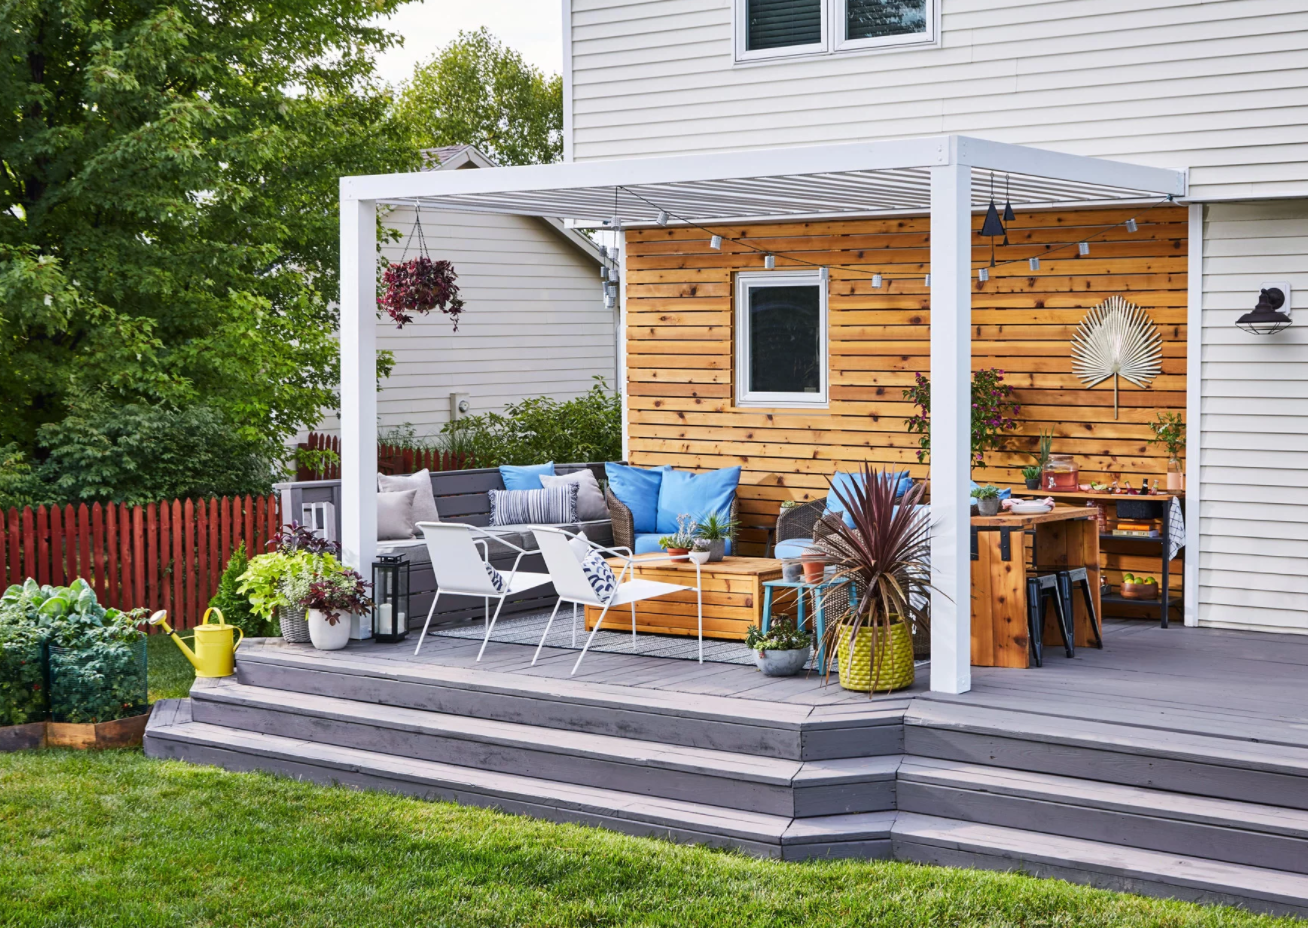 porch design with open sitting area